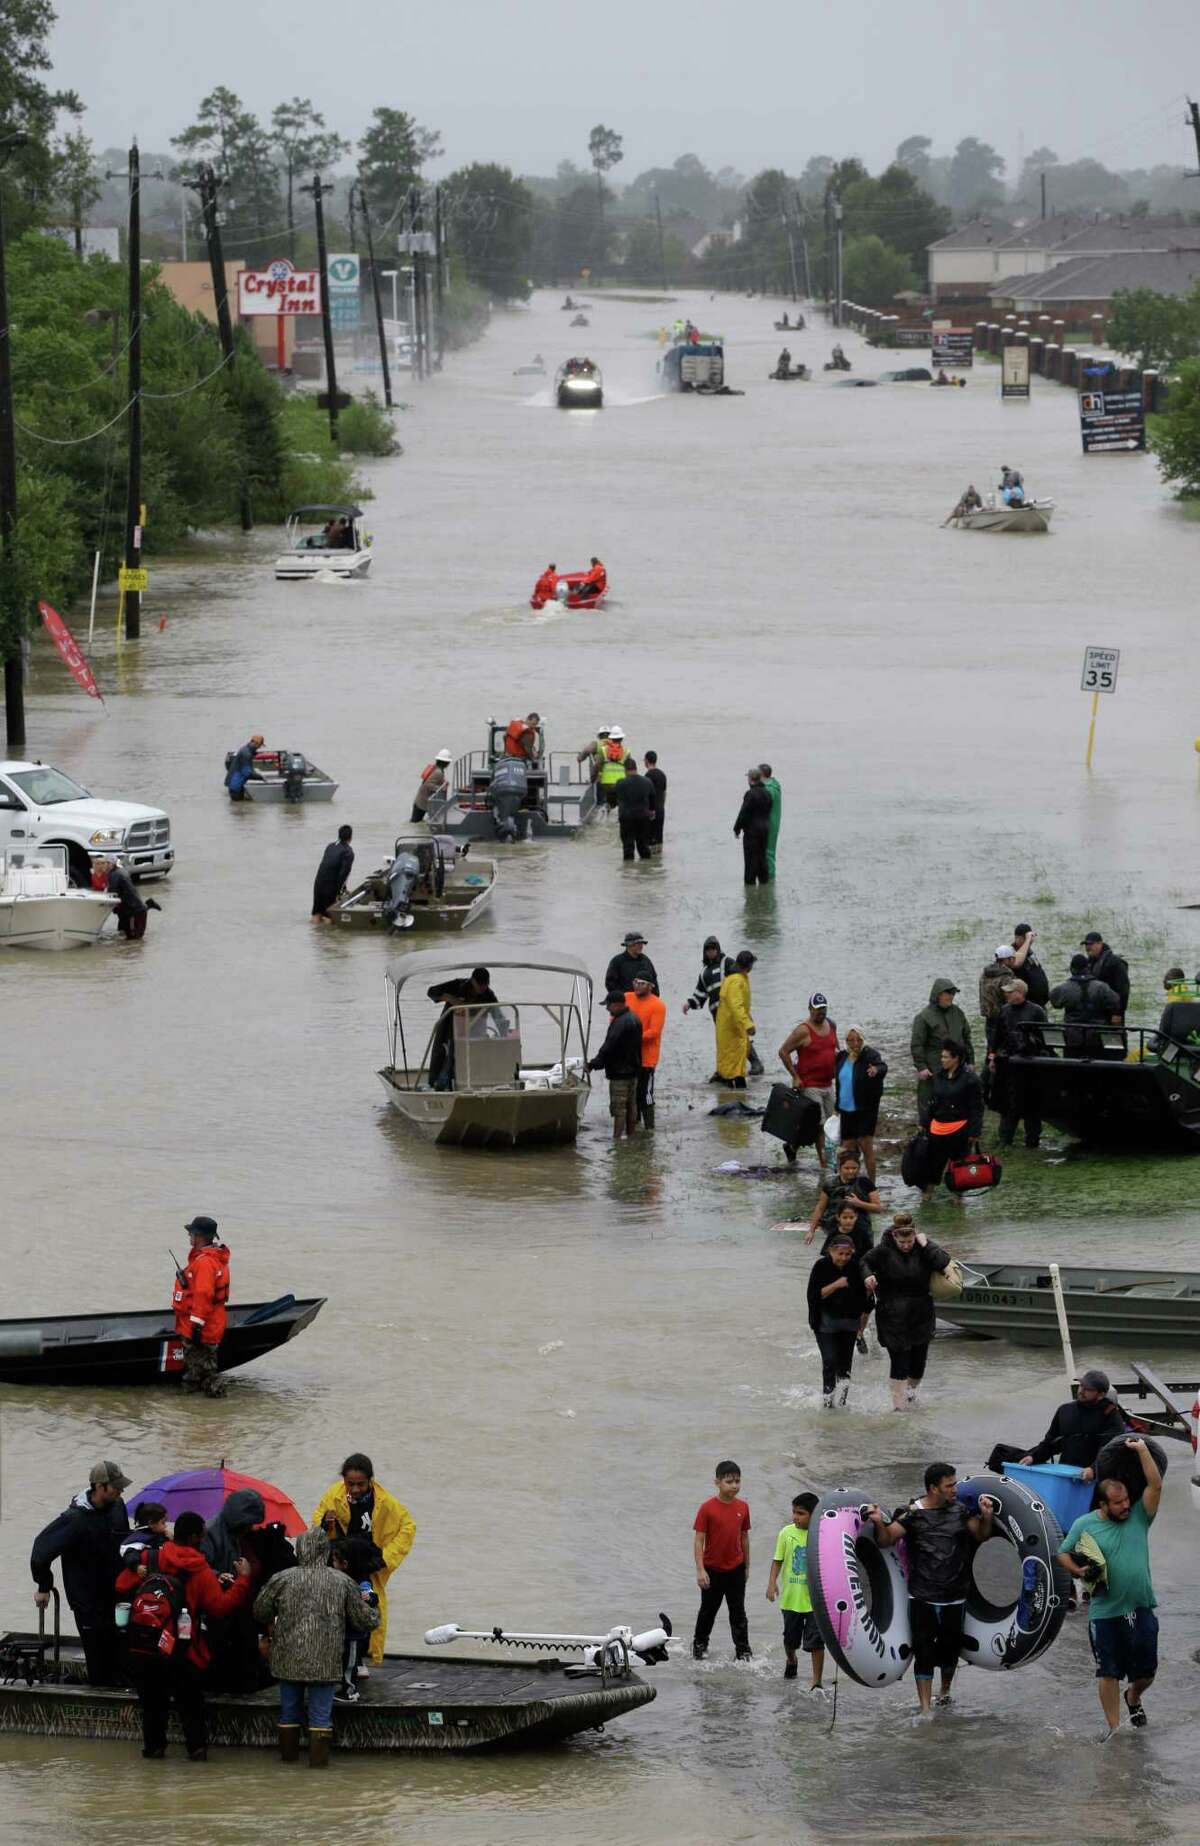 Rescue boats work along Tidwell at the east Sam Houston Tollway helping to evacuate people Monday, August 28, 2017. Much of the area is flooded from rains after Hurricane Harvey. ( Melissa Phillip / Houston Chronicle)